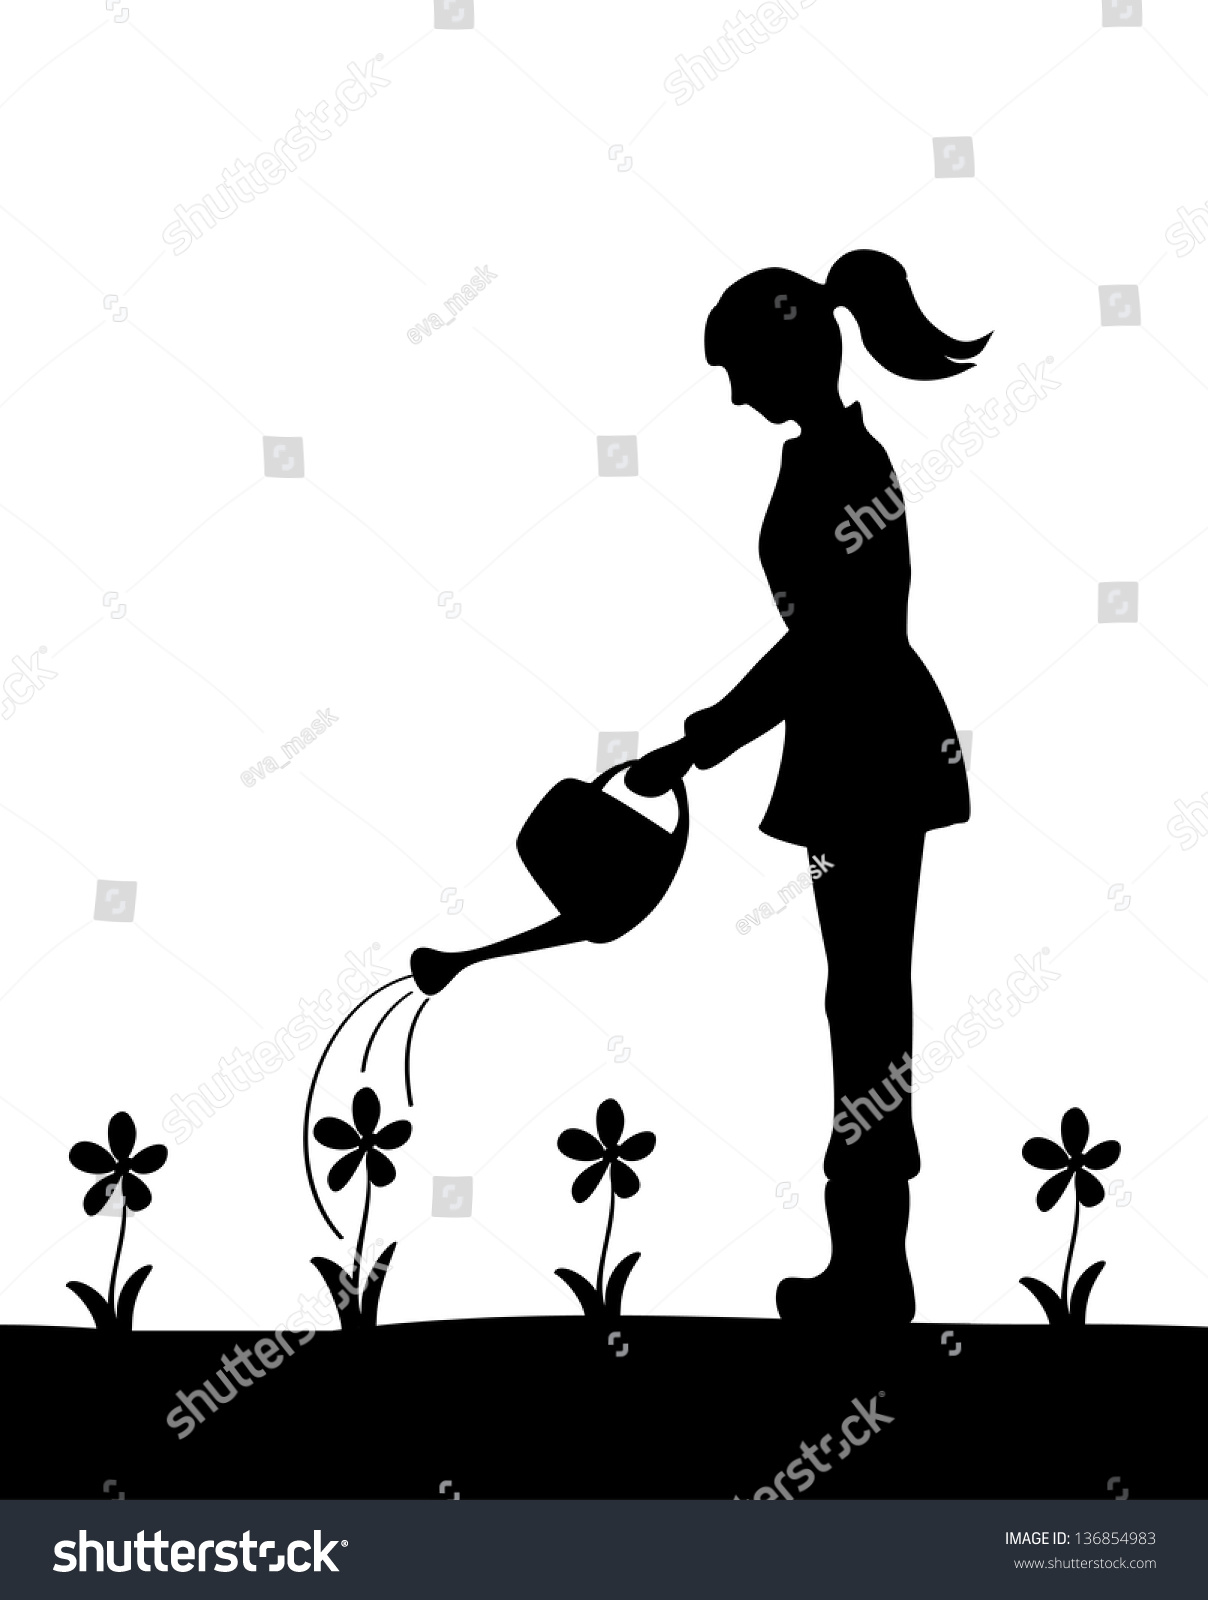 Silhouette Girl Watering Flowers Stock Vector 136854983 ...